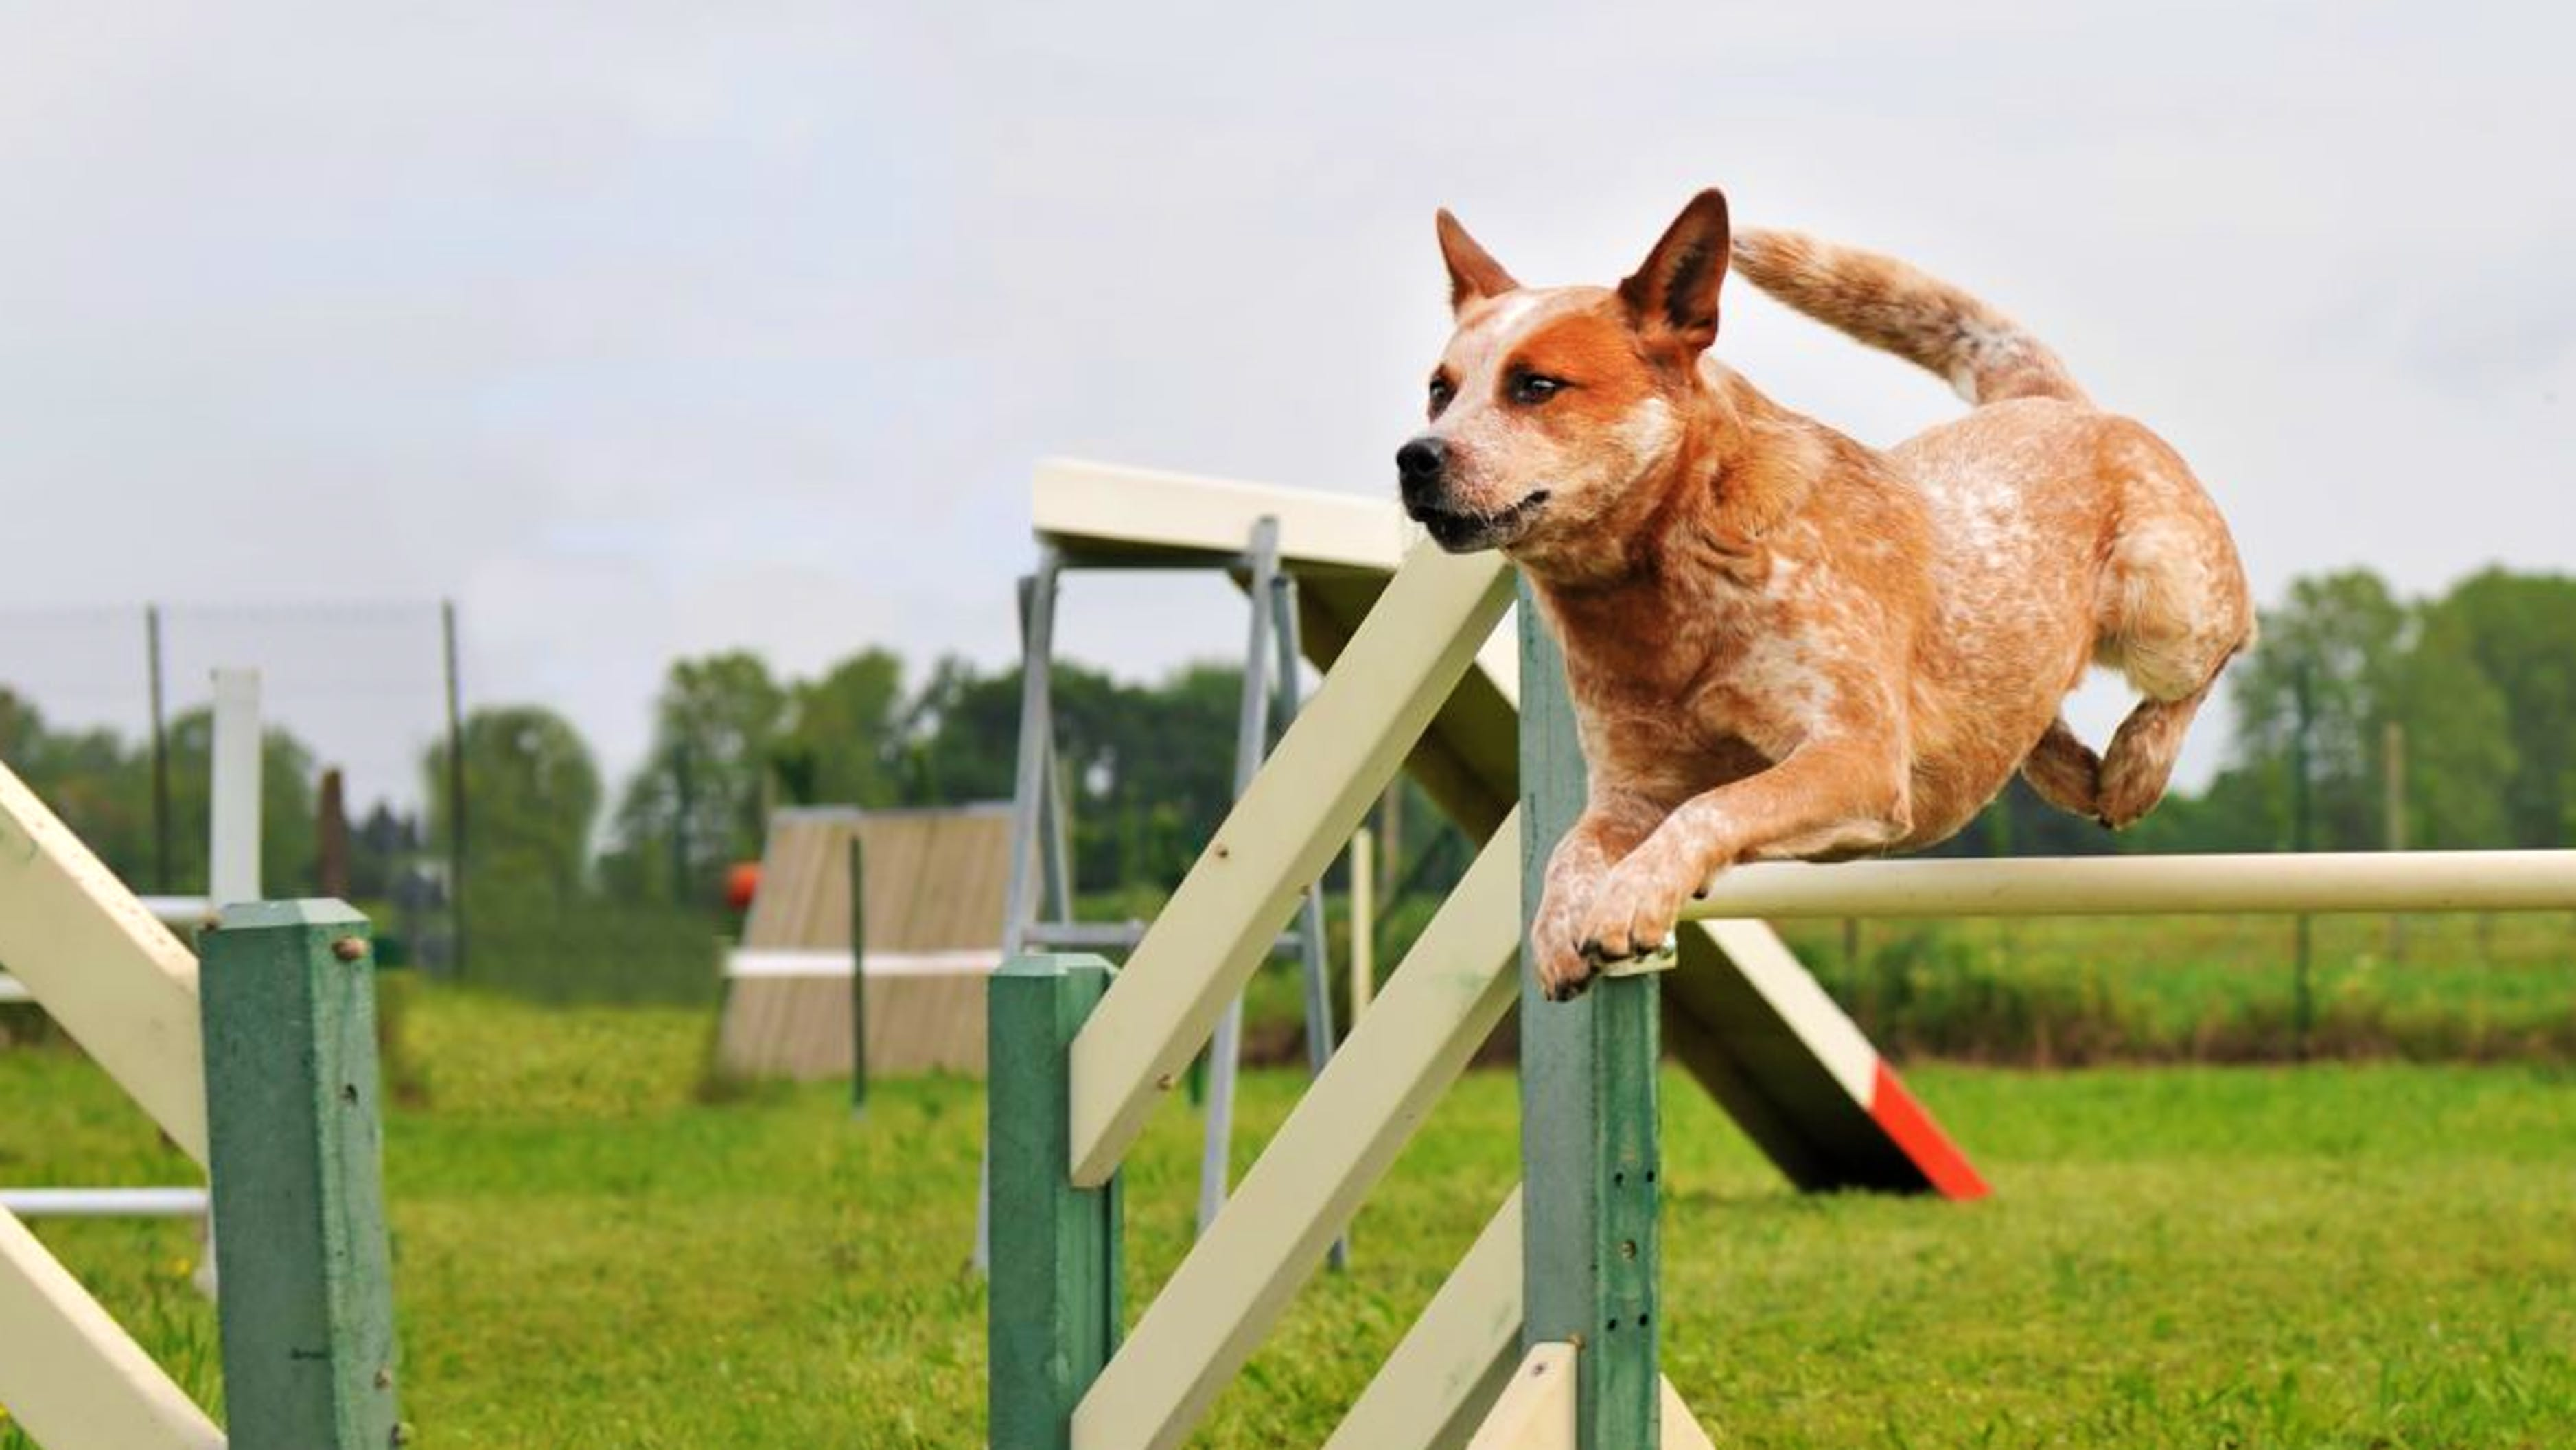 Red Australian Cattle Dog jumping over a hurdle